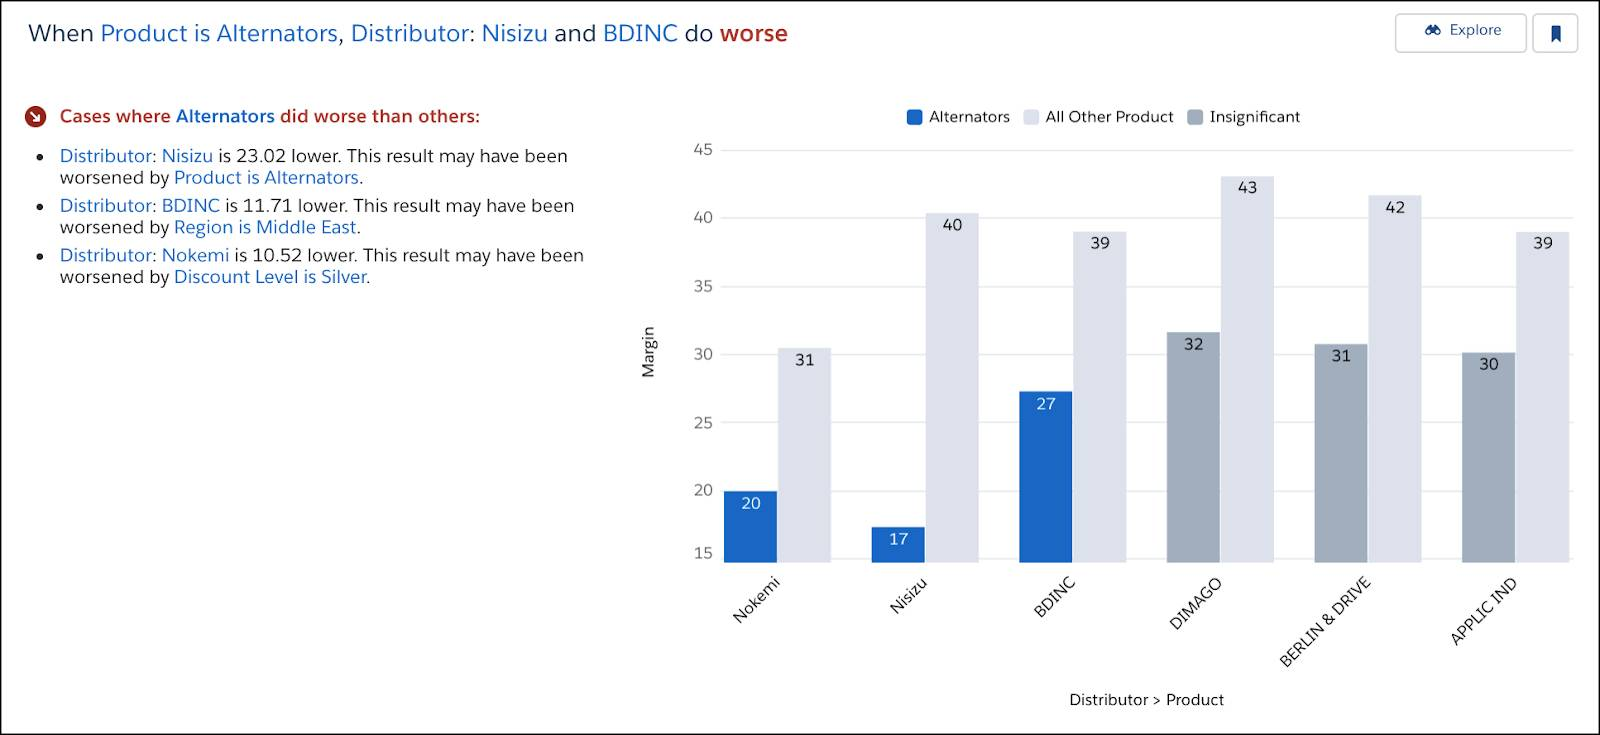 Insight titled: When Product is Alternators, Distributor: Nisizu and BDINC do worse